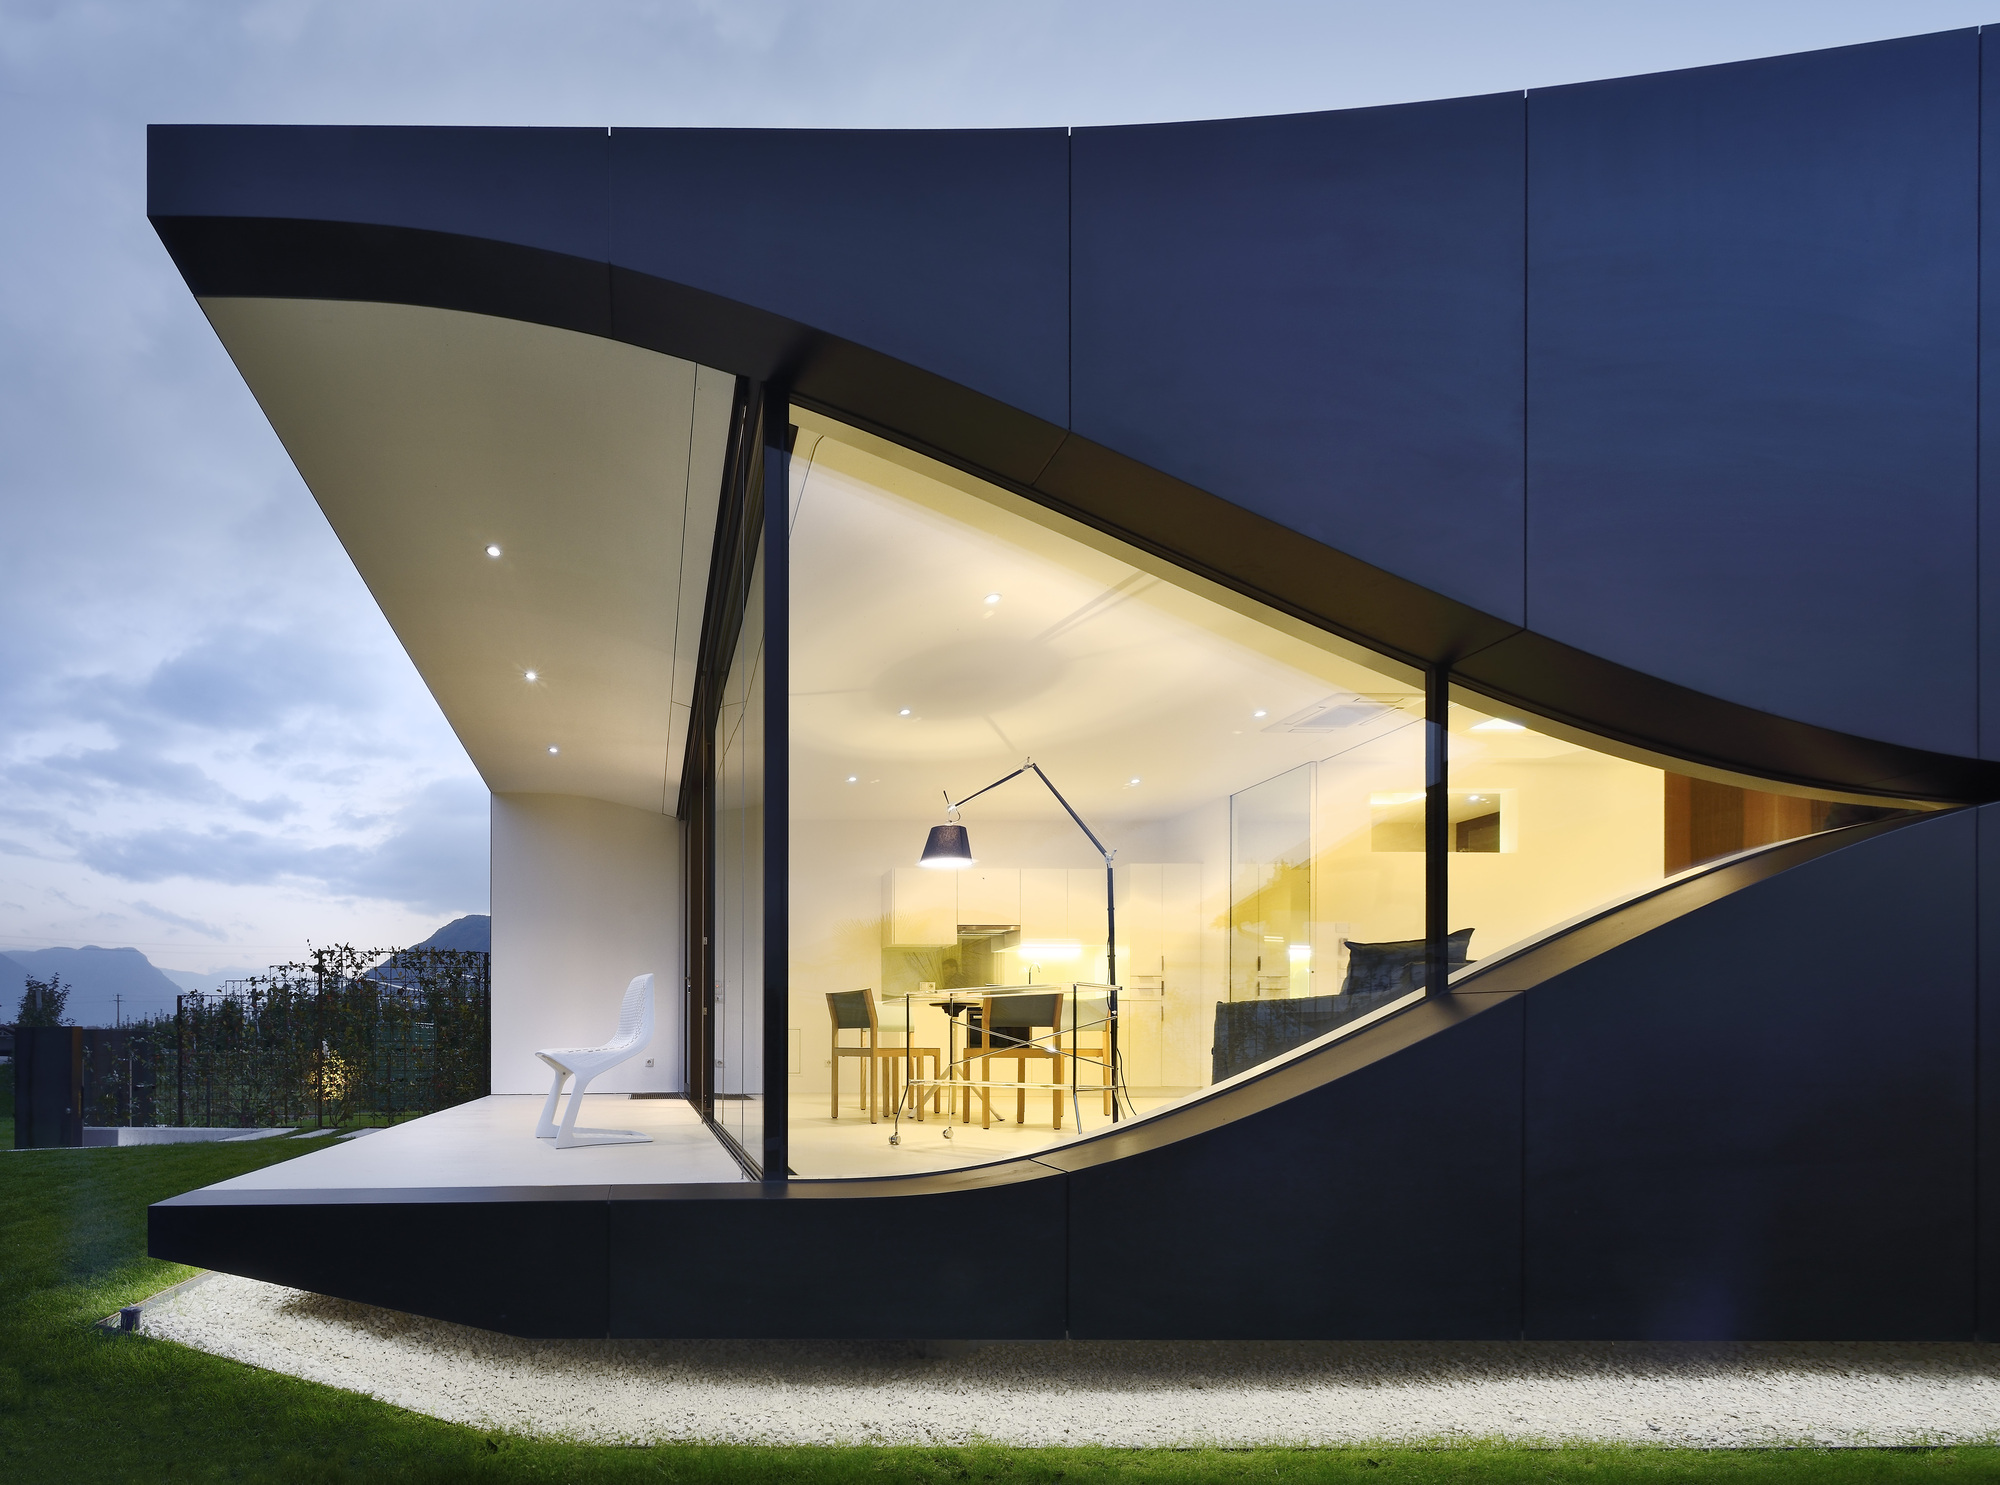 The Mirror Houses / Peter Pichler Architecture (20)